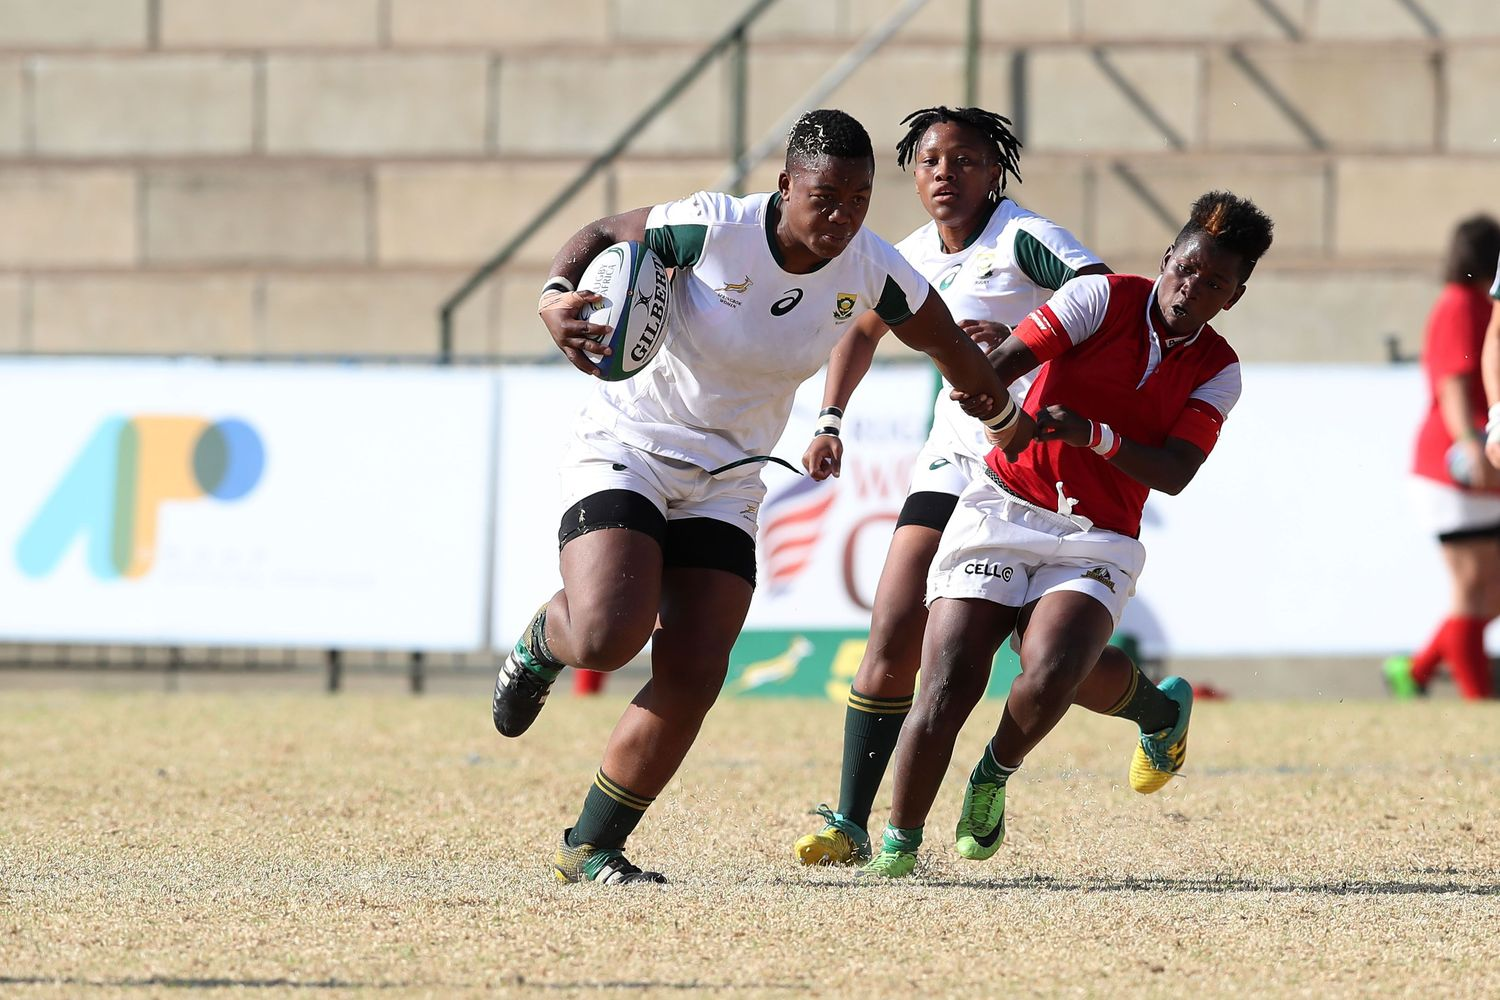 Photo of Babalwa Latsha playing for South Africa against Madagascar at the Rugby Africa Women's World Cup